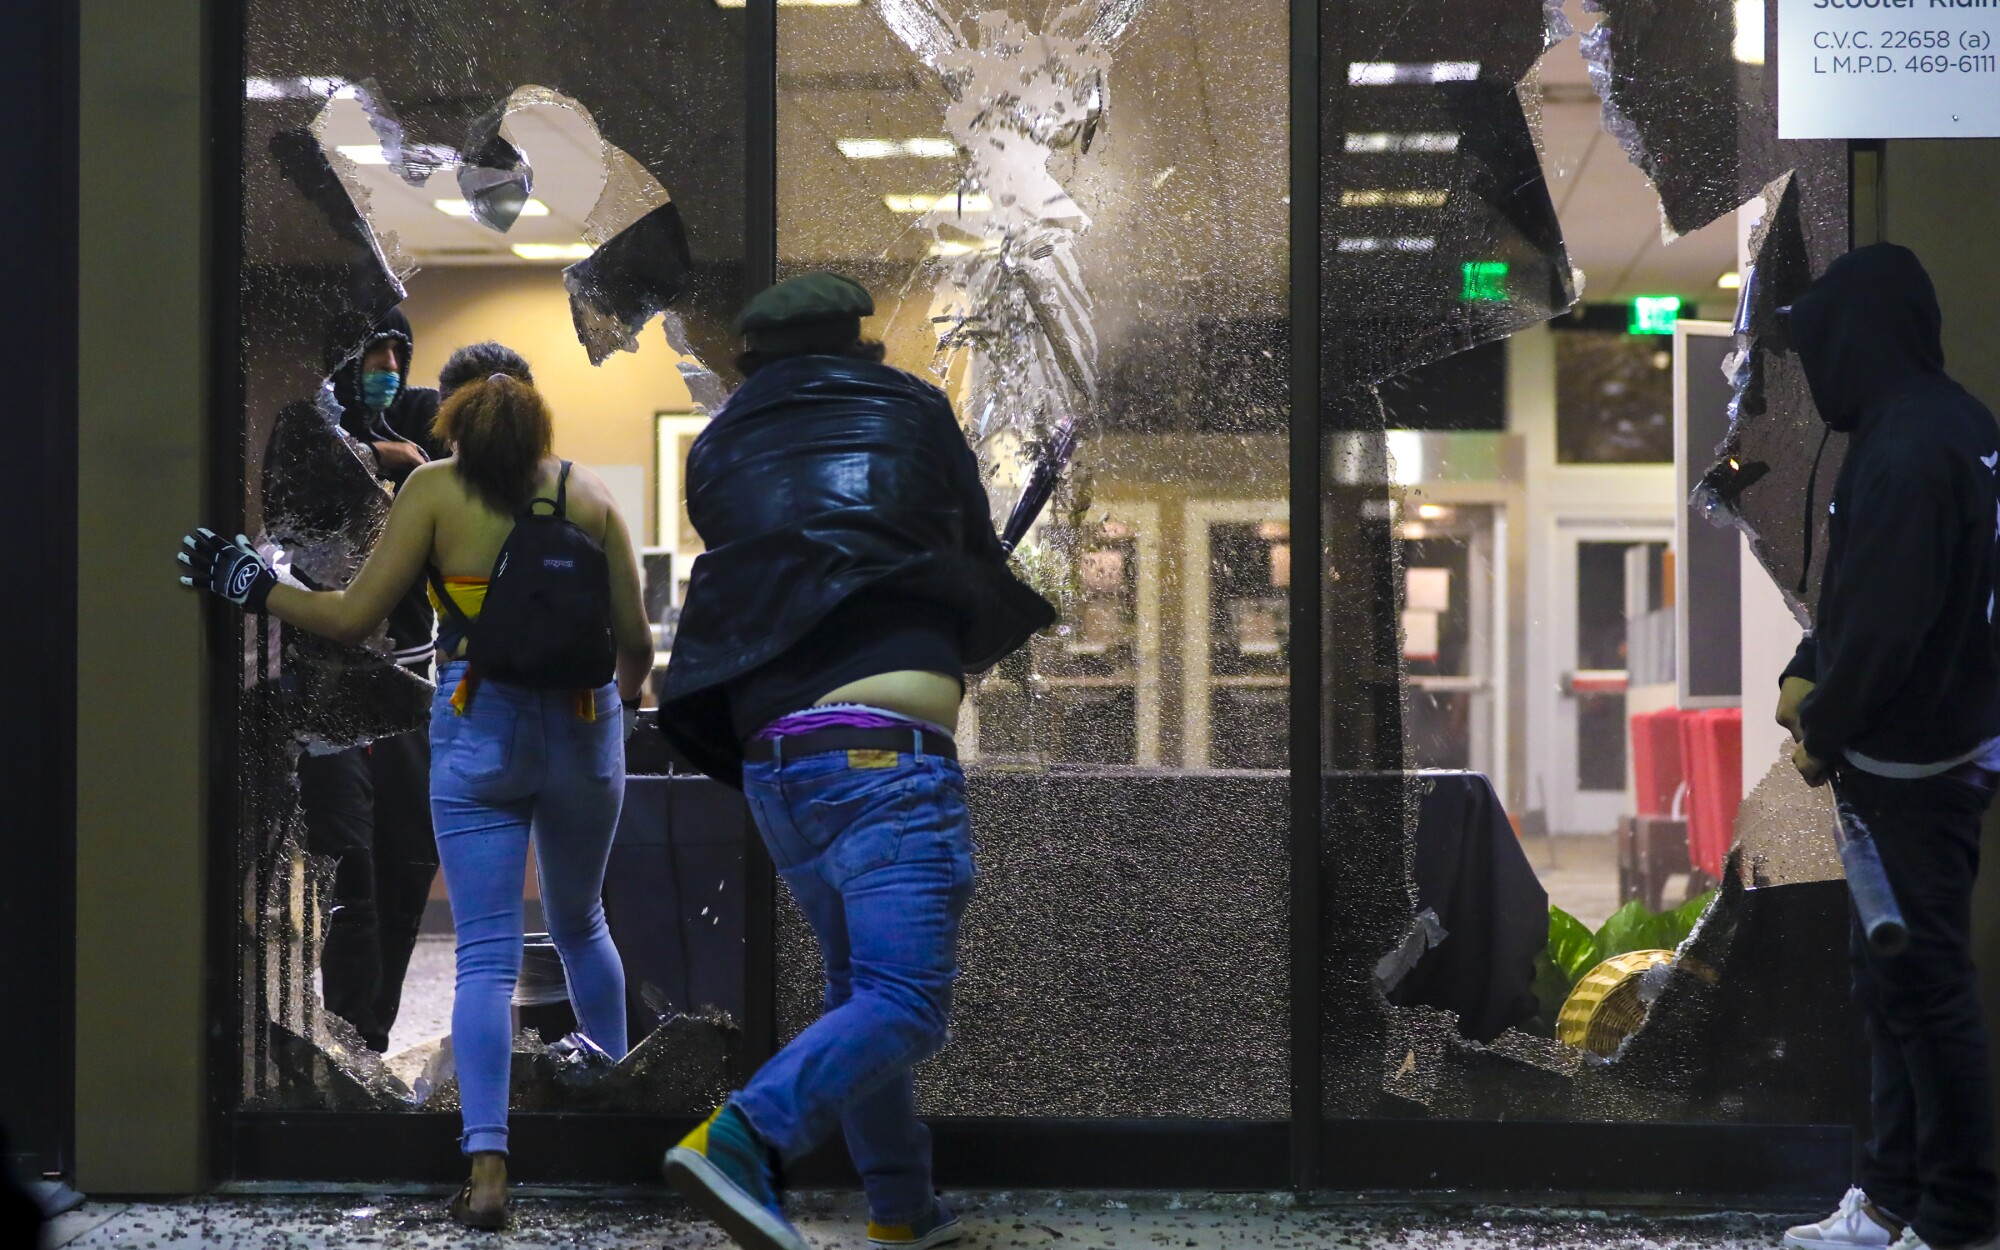 Looters smash windows at the Union Bank on Spring Street in La Mesa, before eventually setting it on fire.